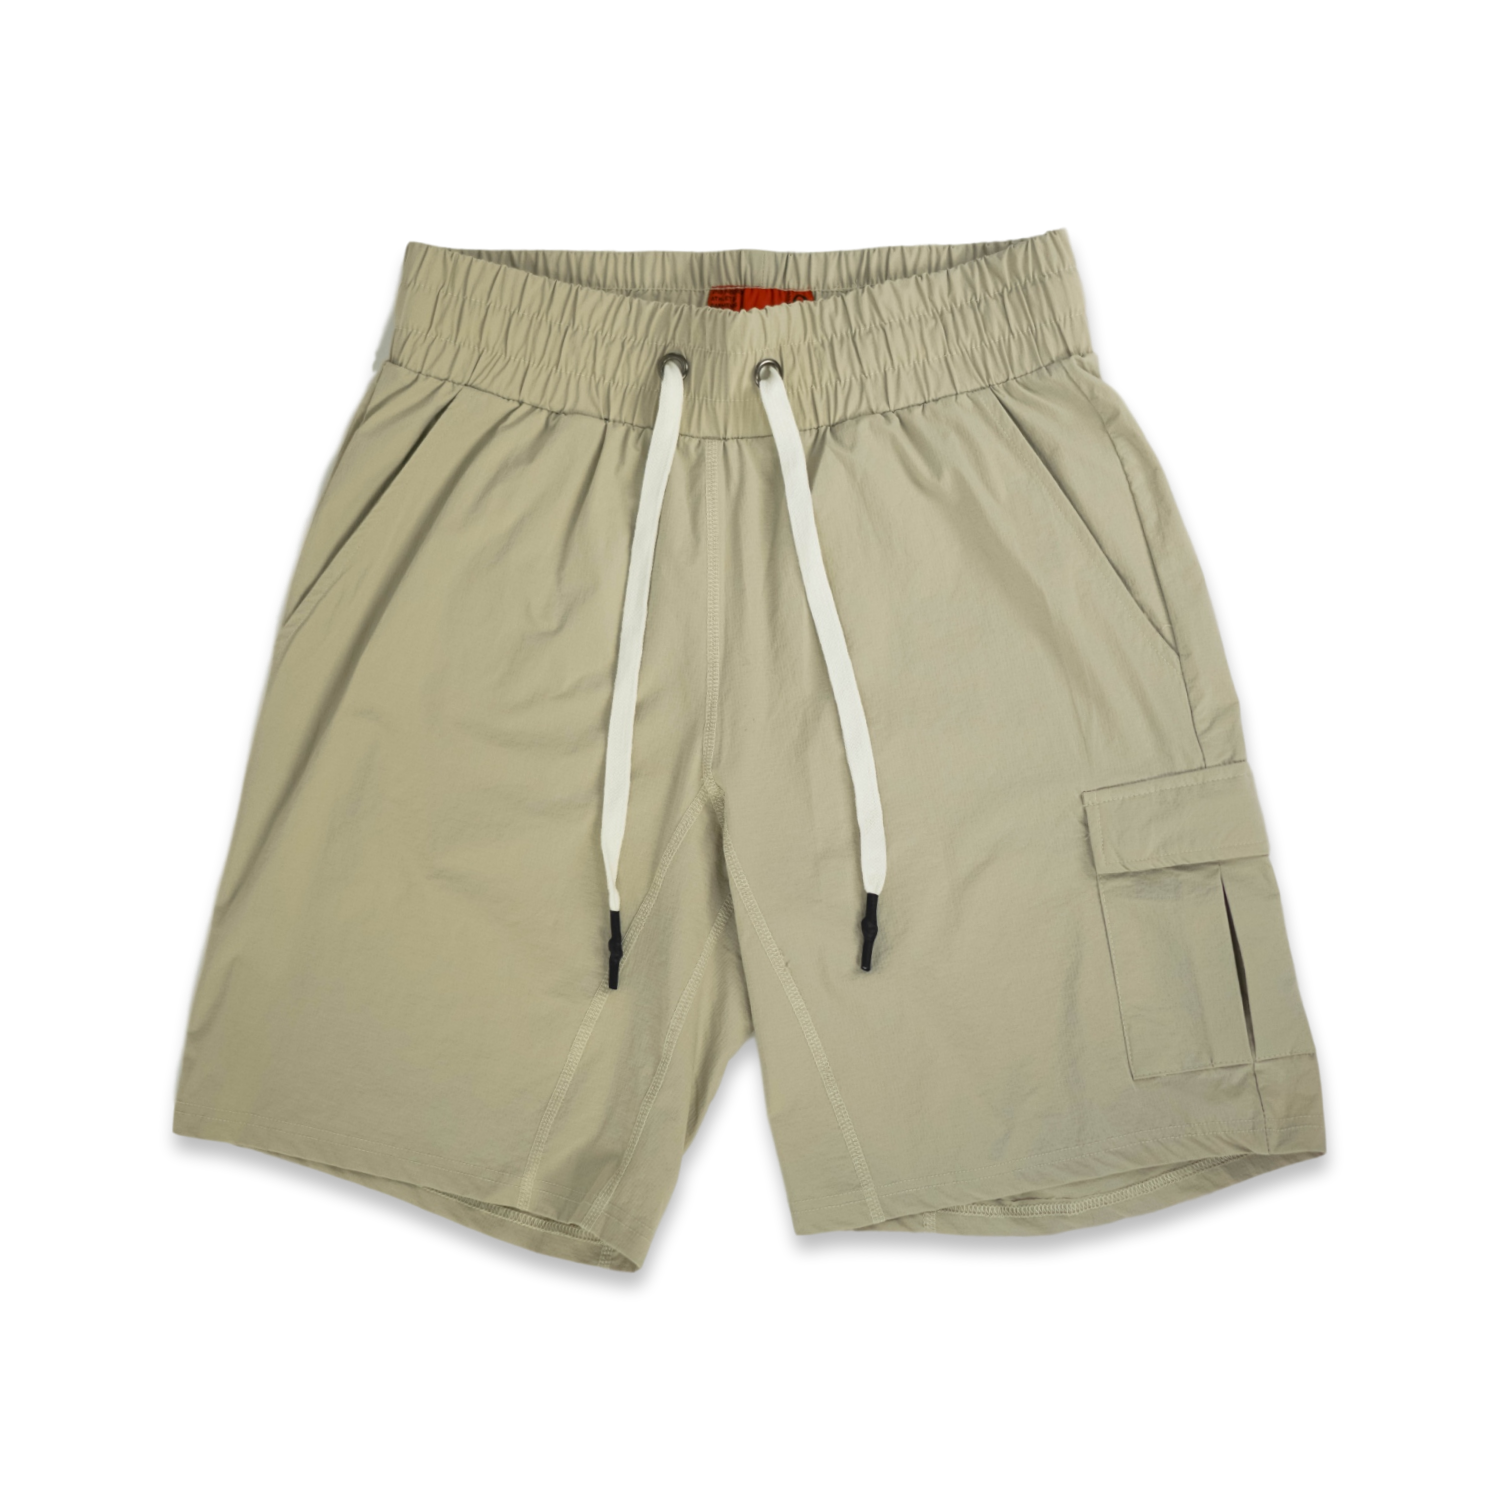 Adapt Performance Shorts [Beige]